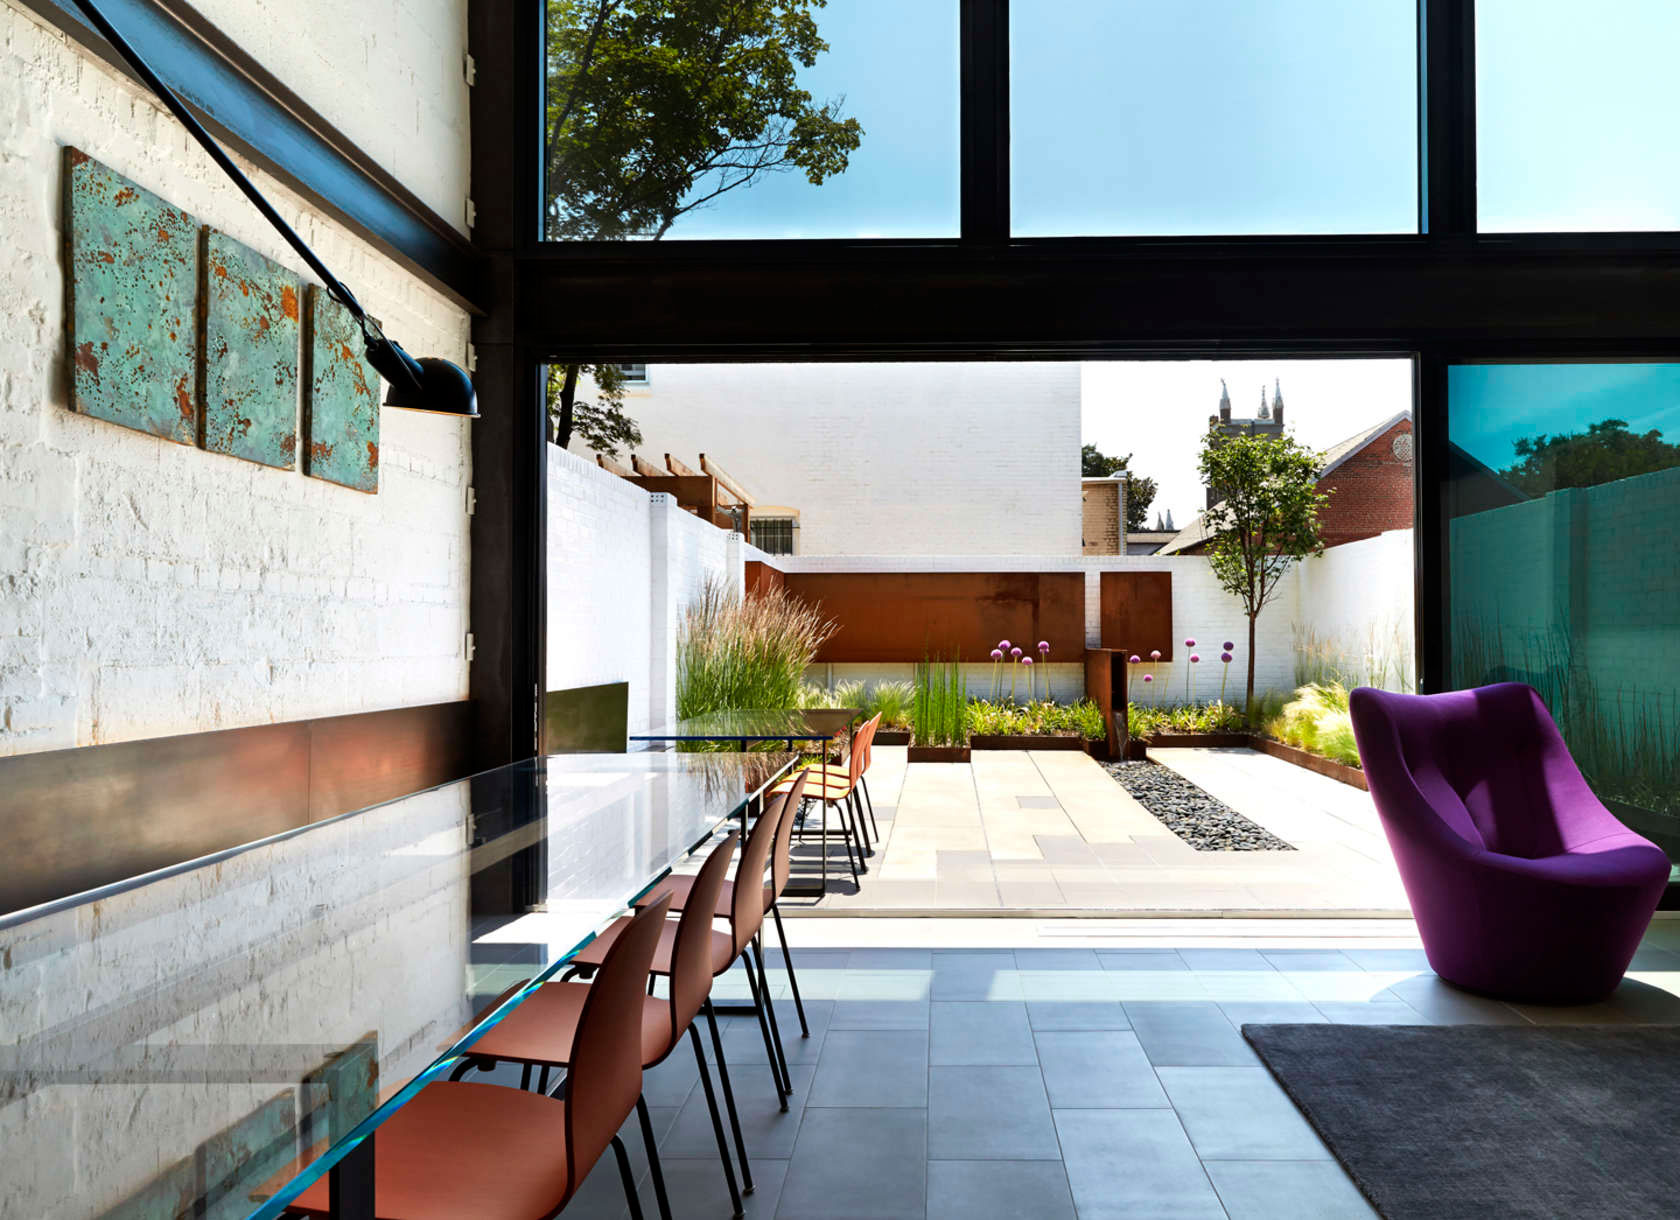 Salt and Pepper House in Washington, D.C. by KUBE Architecture-05